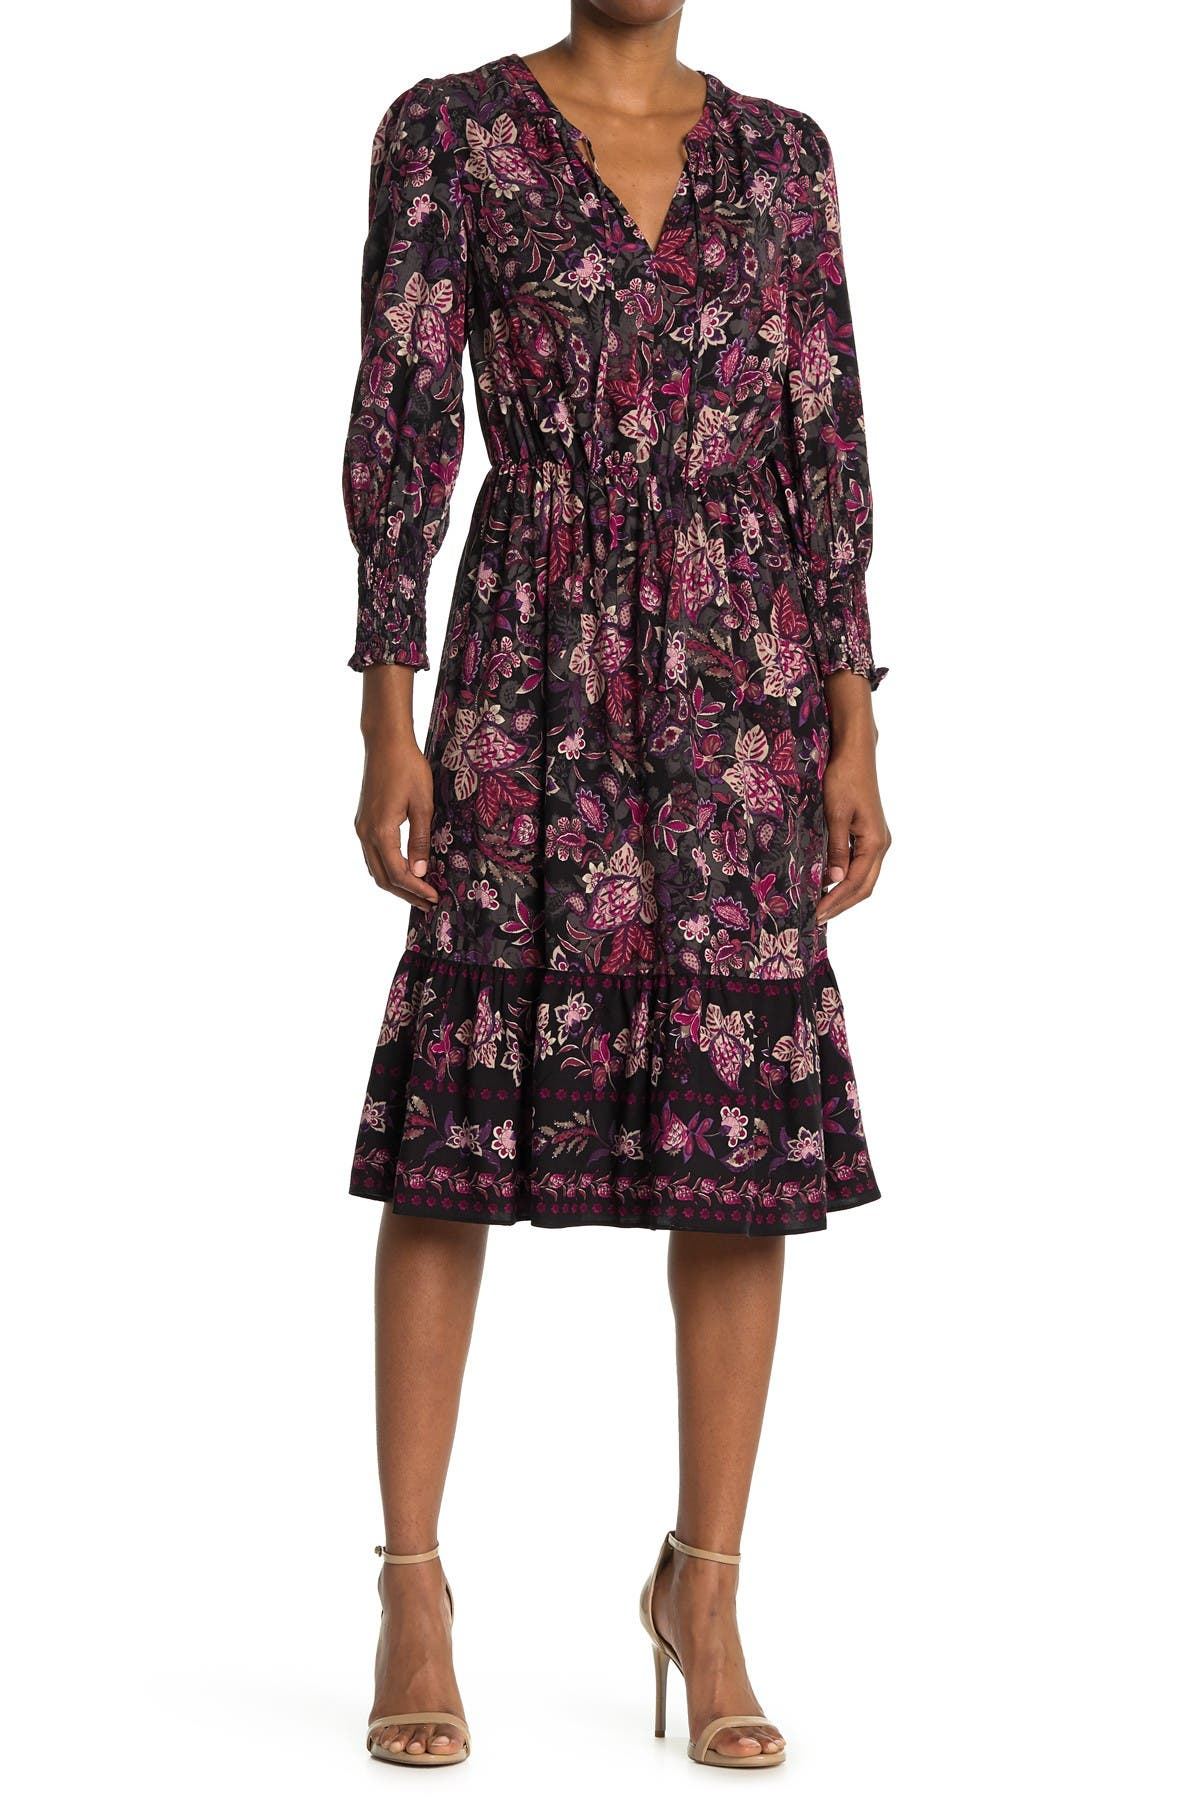 Image of London Times Challis Floral Long Sleeve Flounce Midi Dress